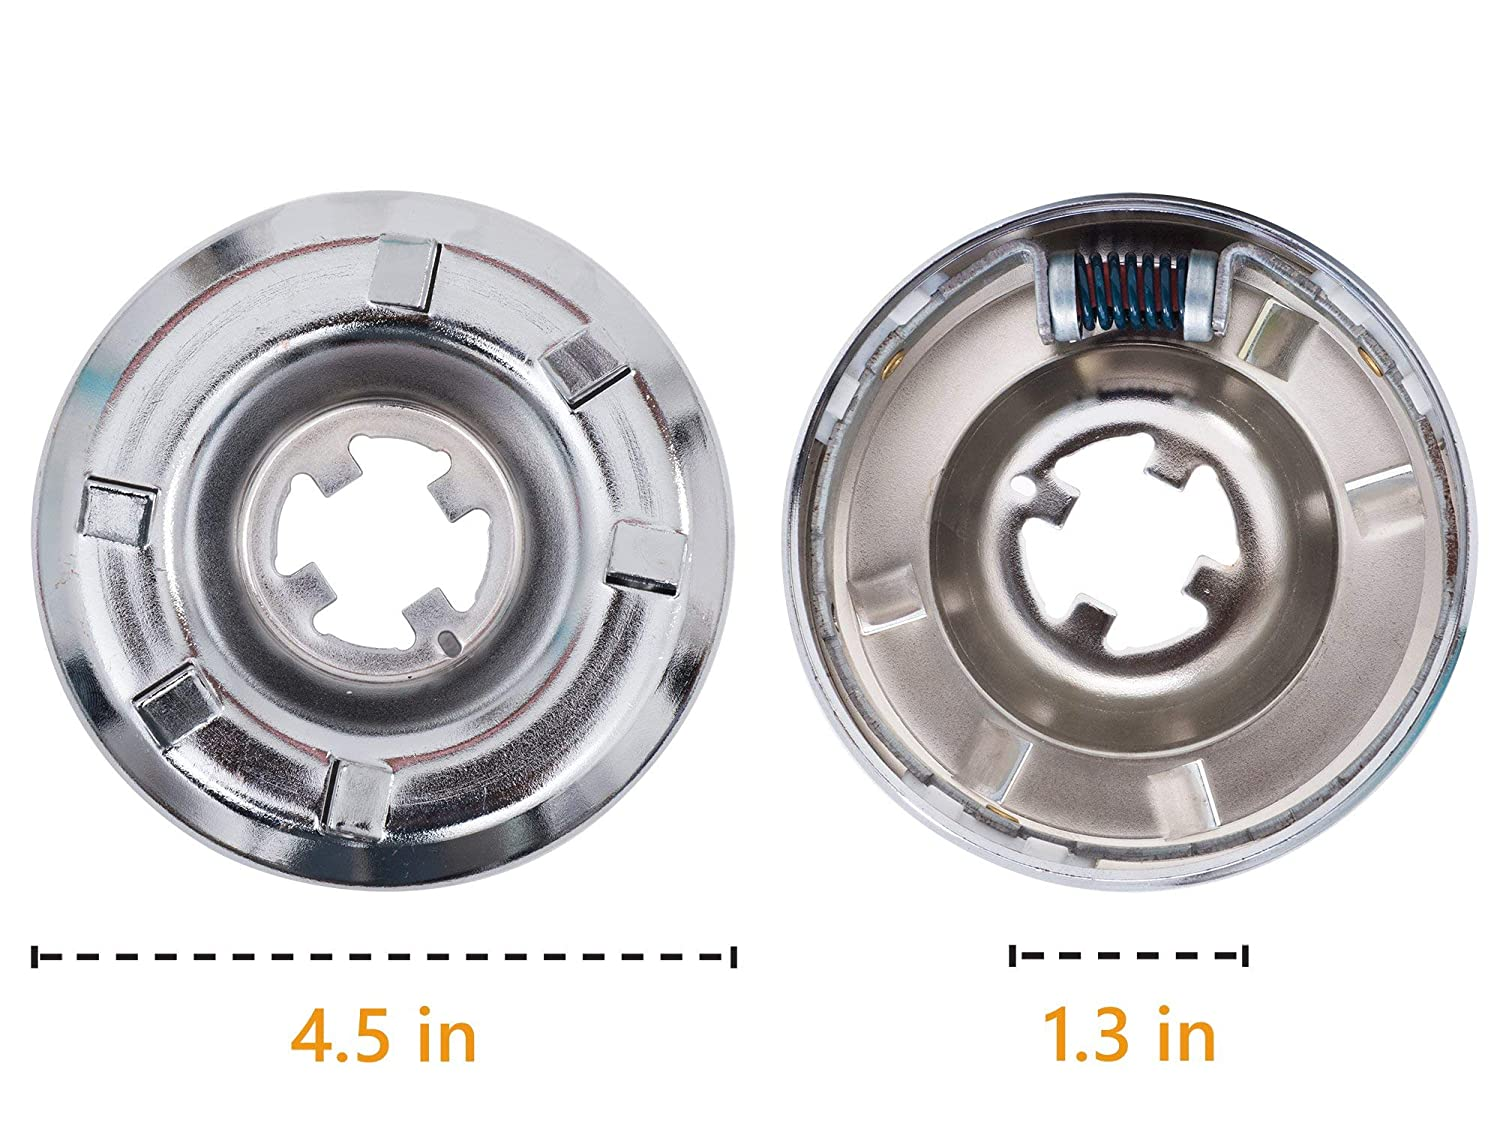 Ultra Durable 285785 Washer Clutch Kit Replacement by Blue Stars - Exact  Fit for Whirlpool & Kenmore Washers - Simple Instruction Included -  Replaces